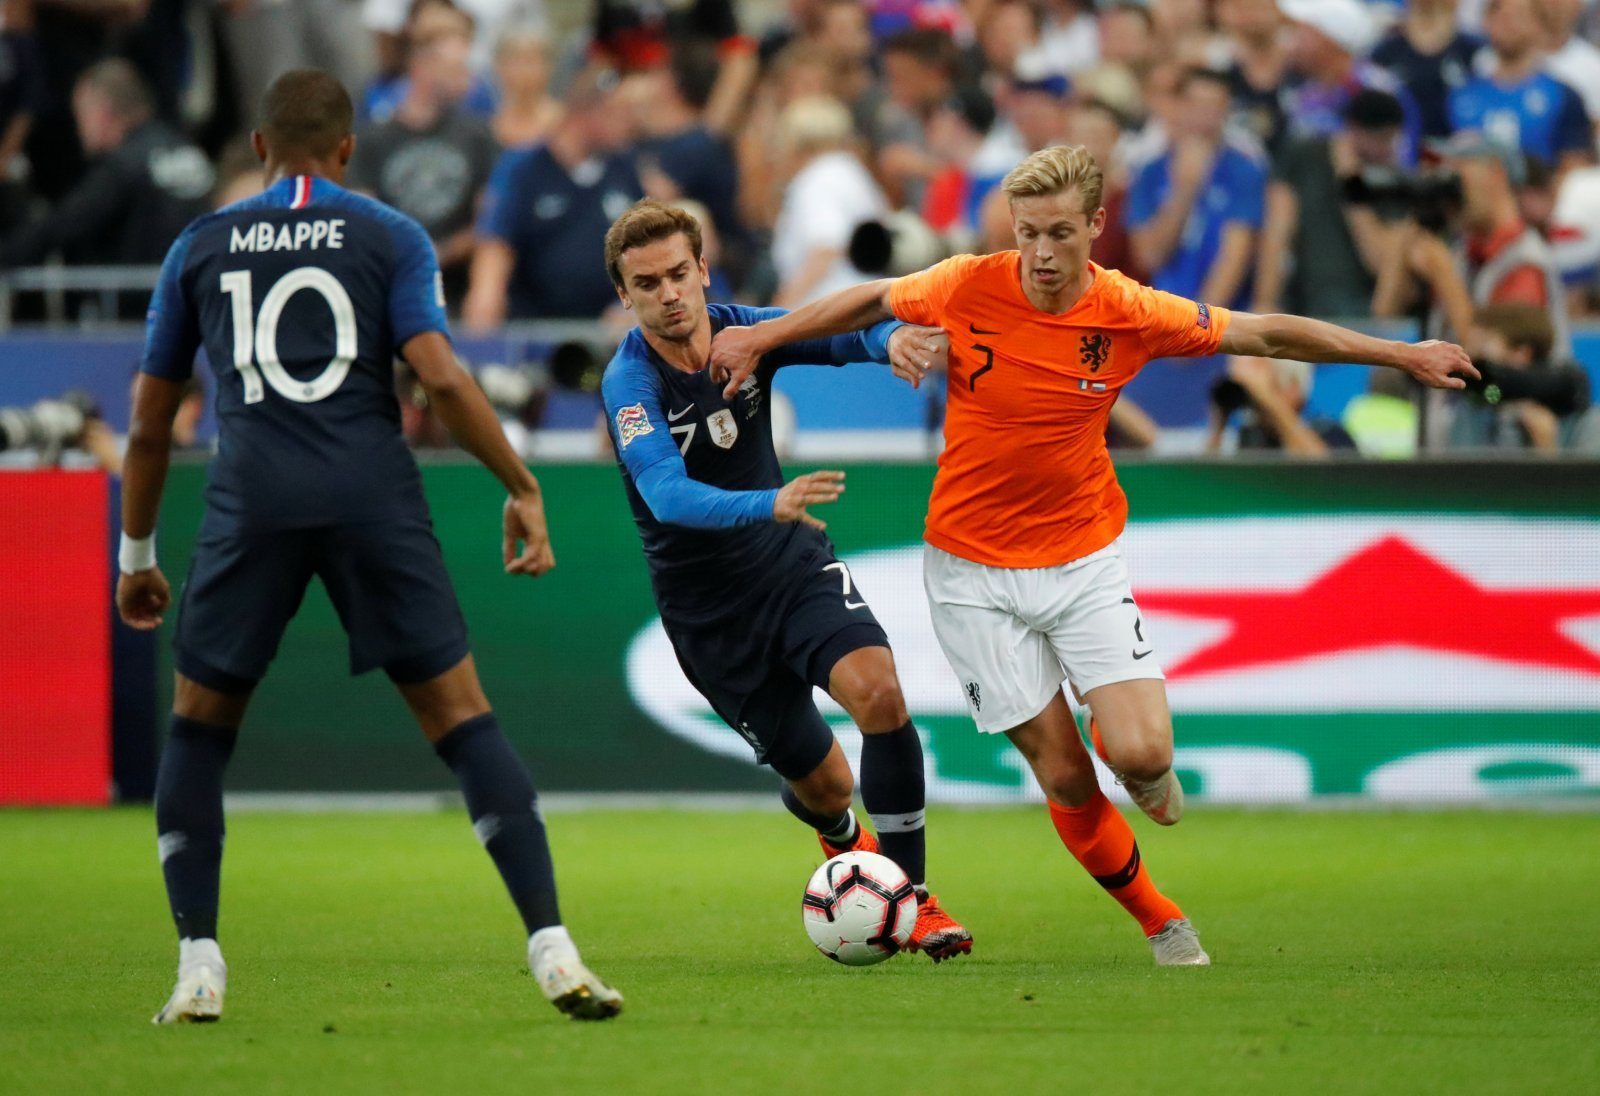 Pundit's Choice: Frenkie de Jong